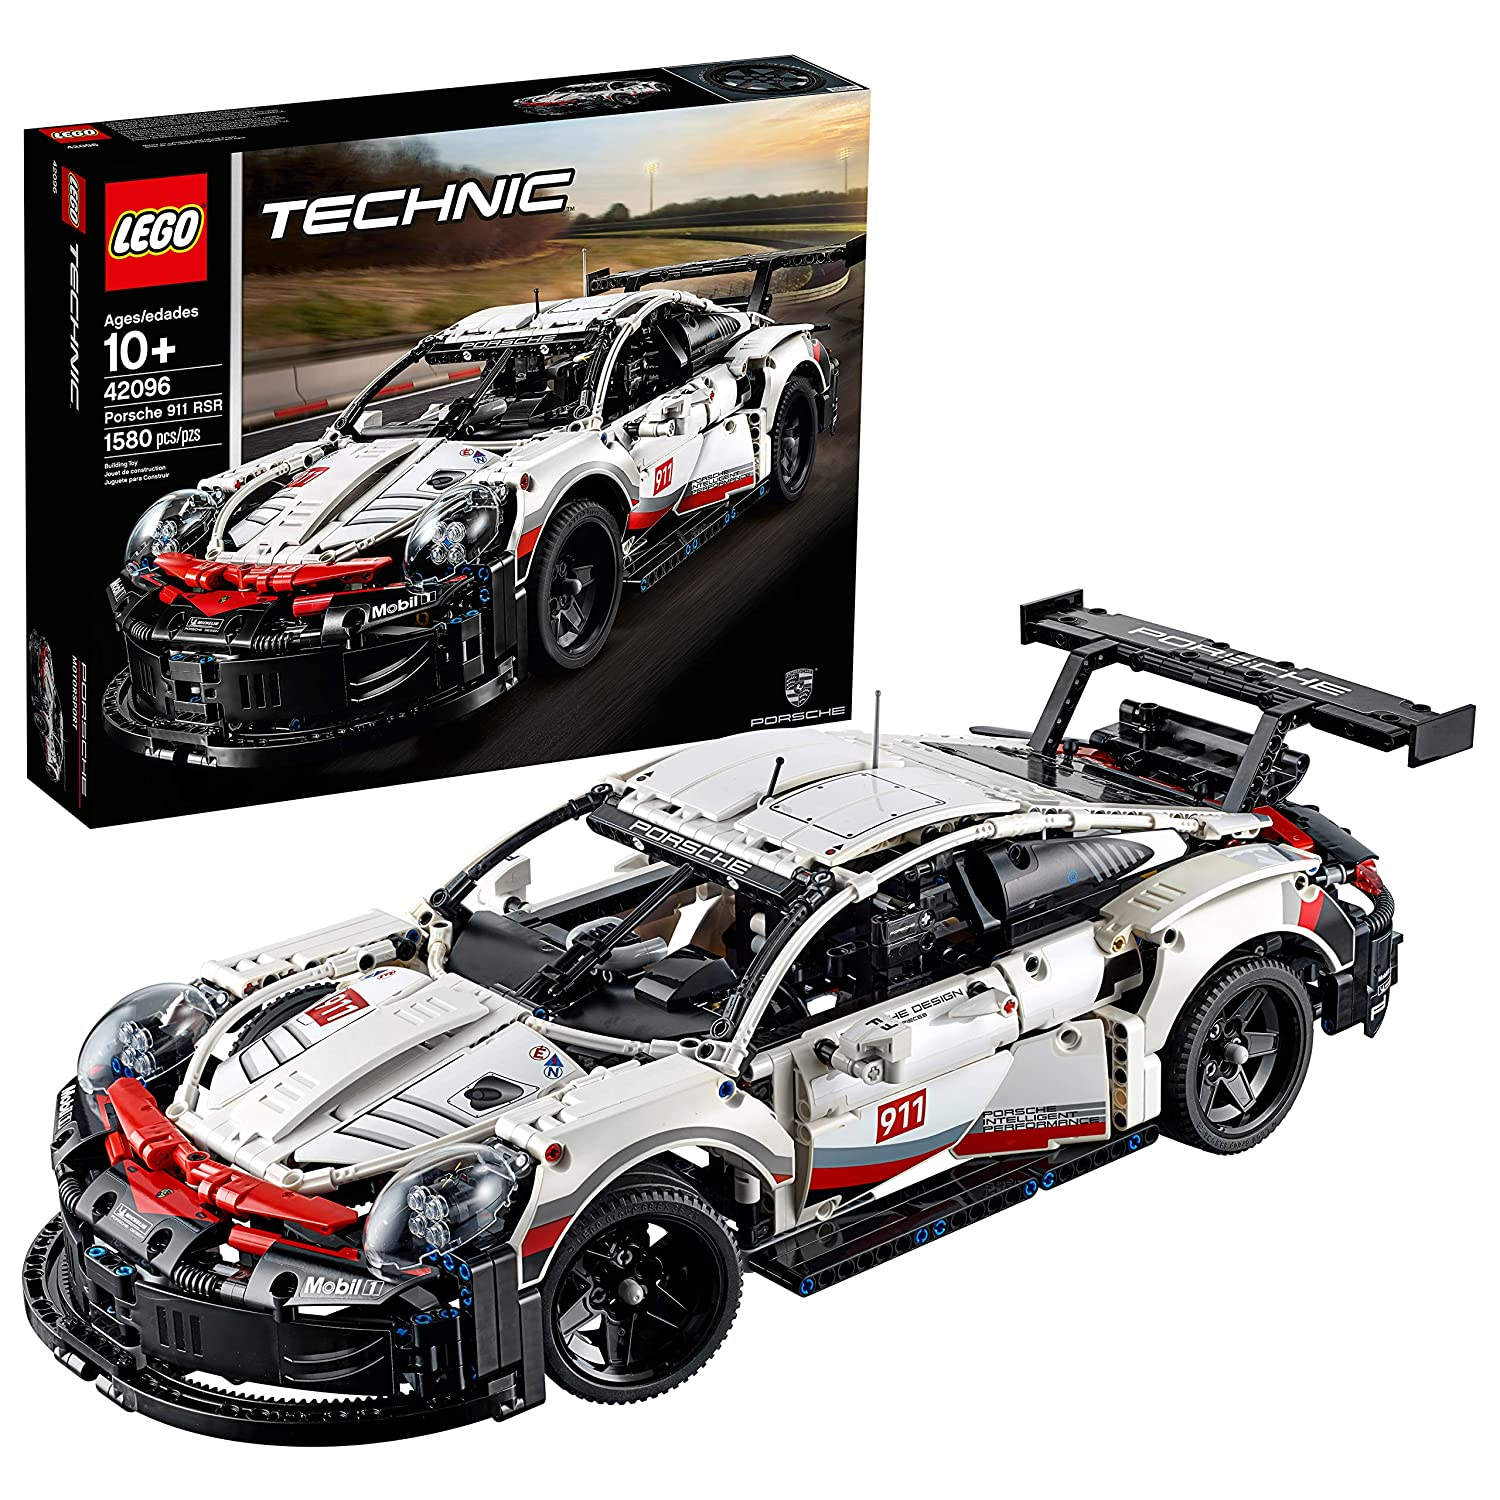 LEGO Technic Porsche 911 RSR 42096 Building Kit , New 2019